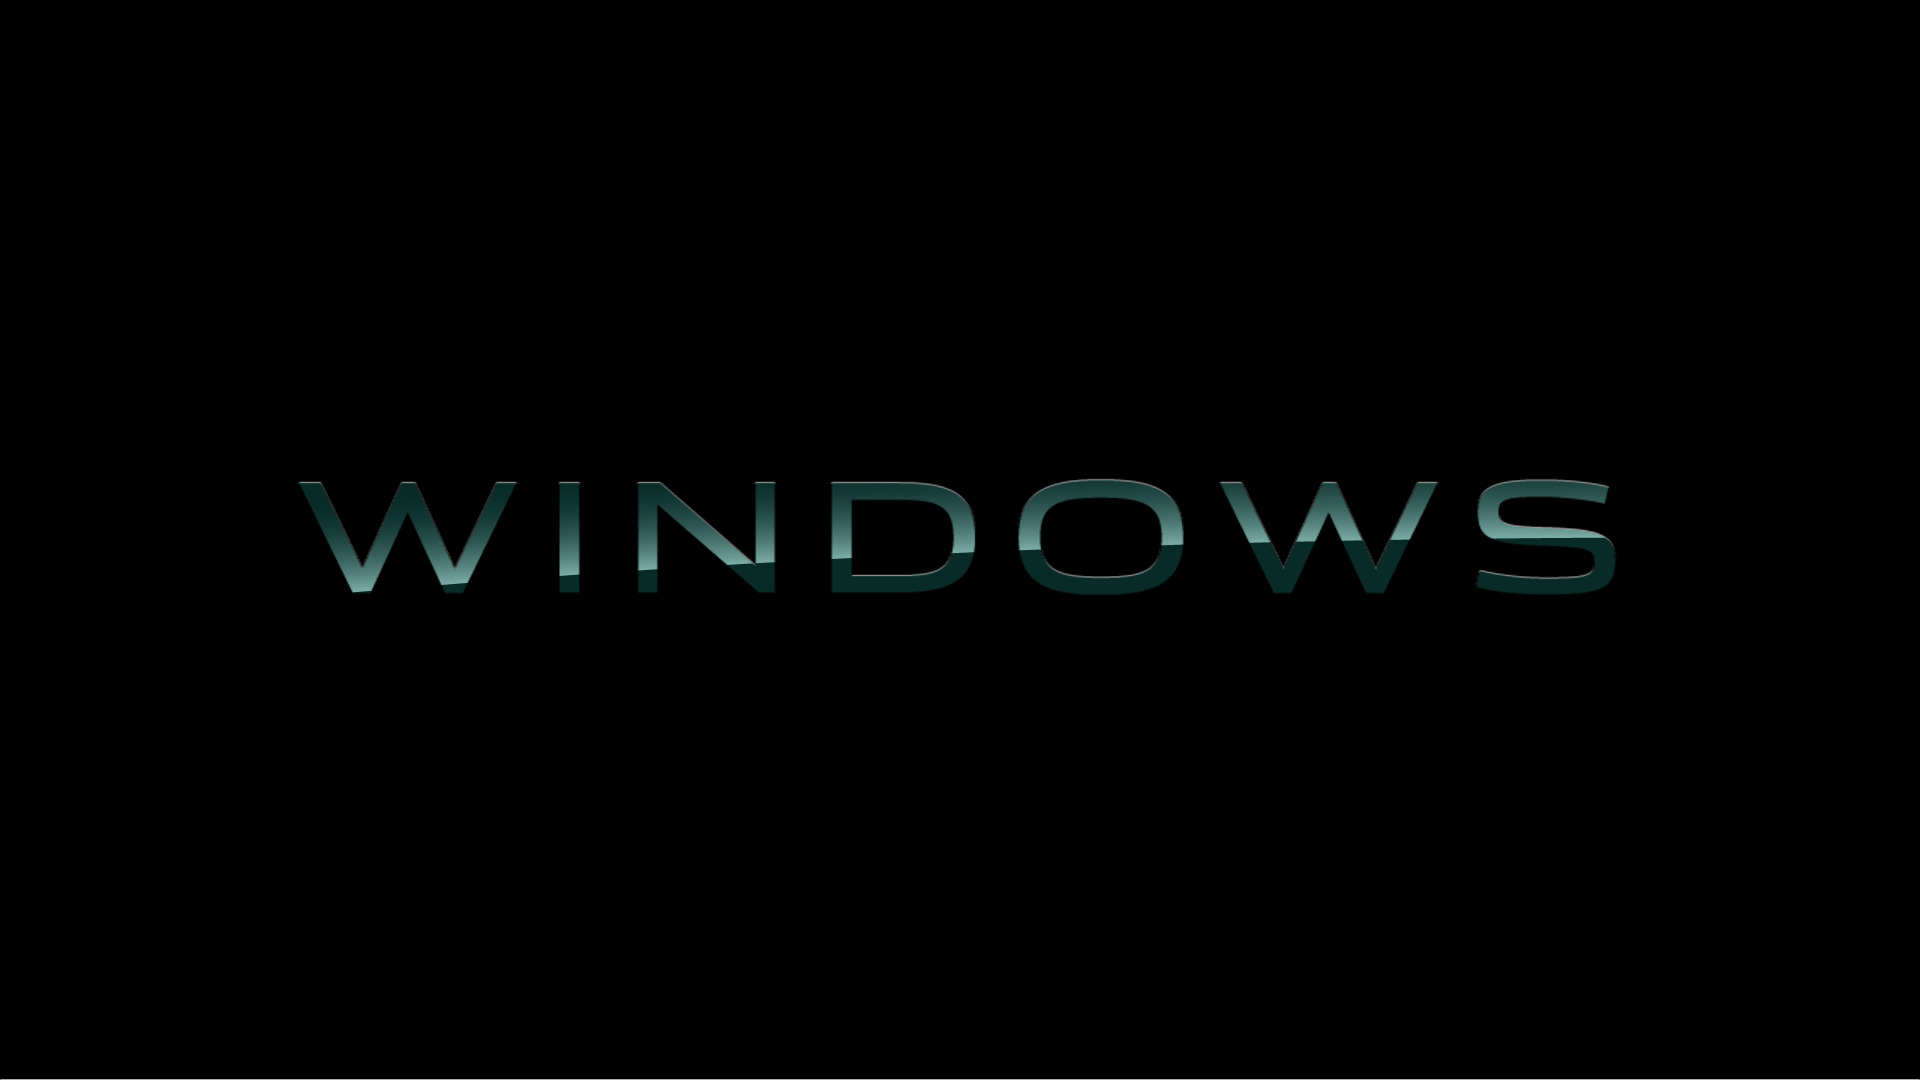 operating systems microsoft windows HD Wallpaper